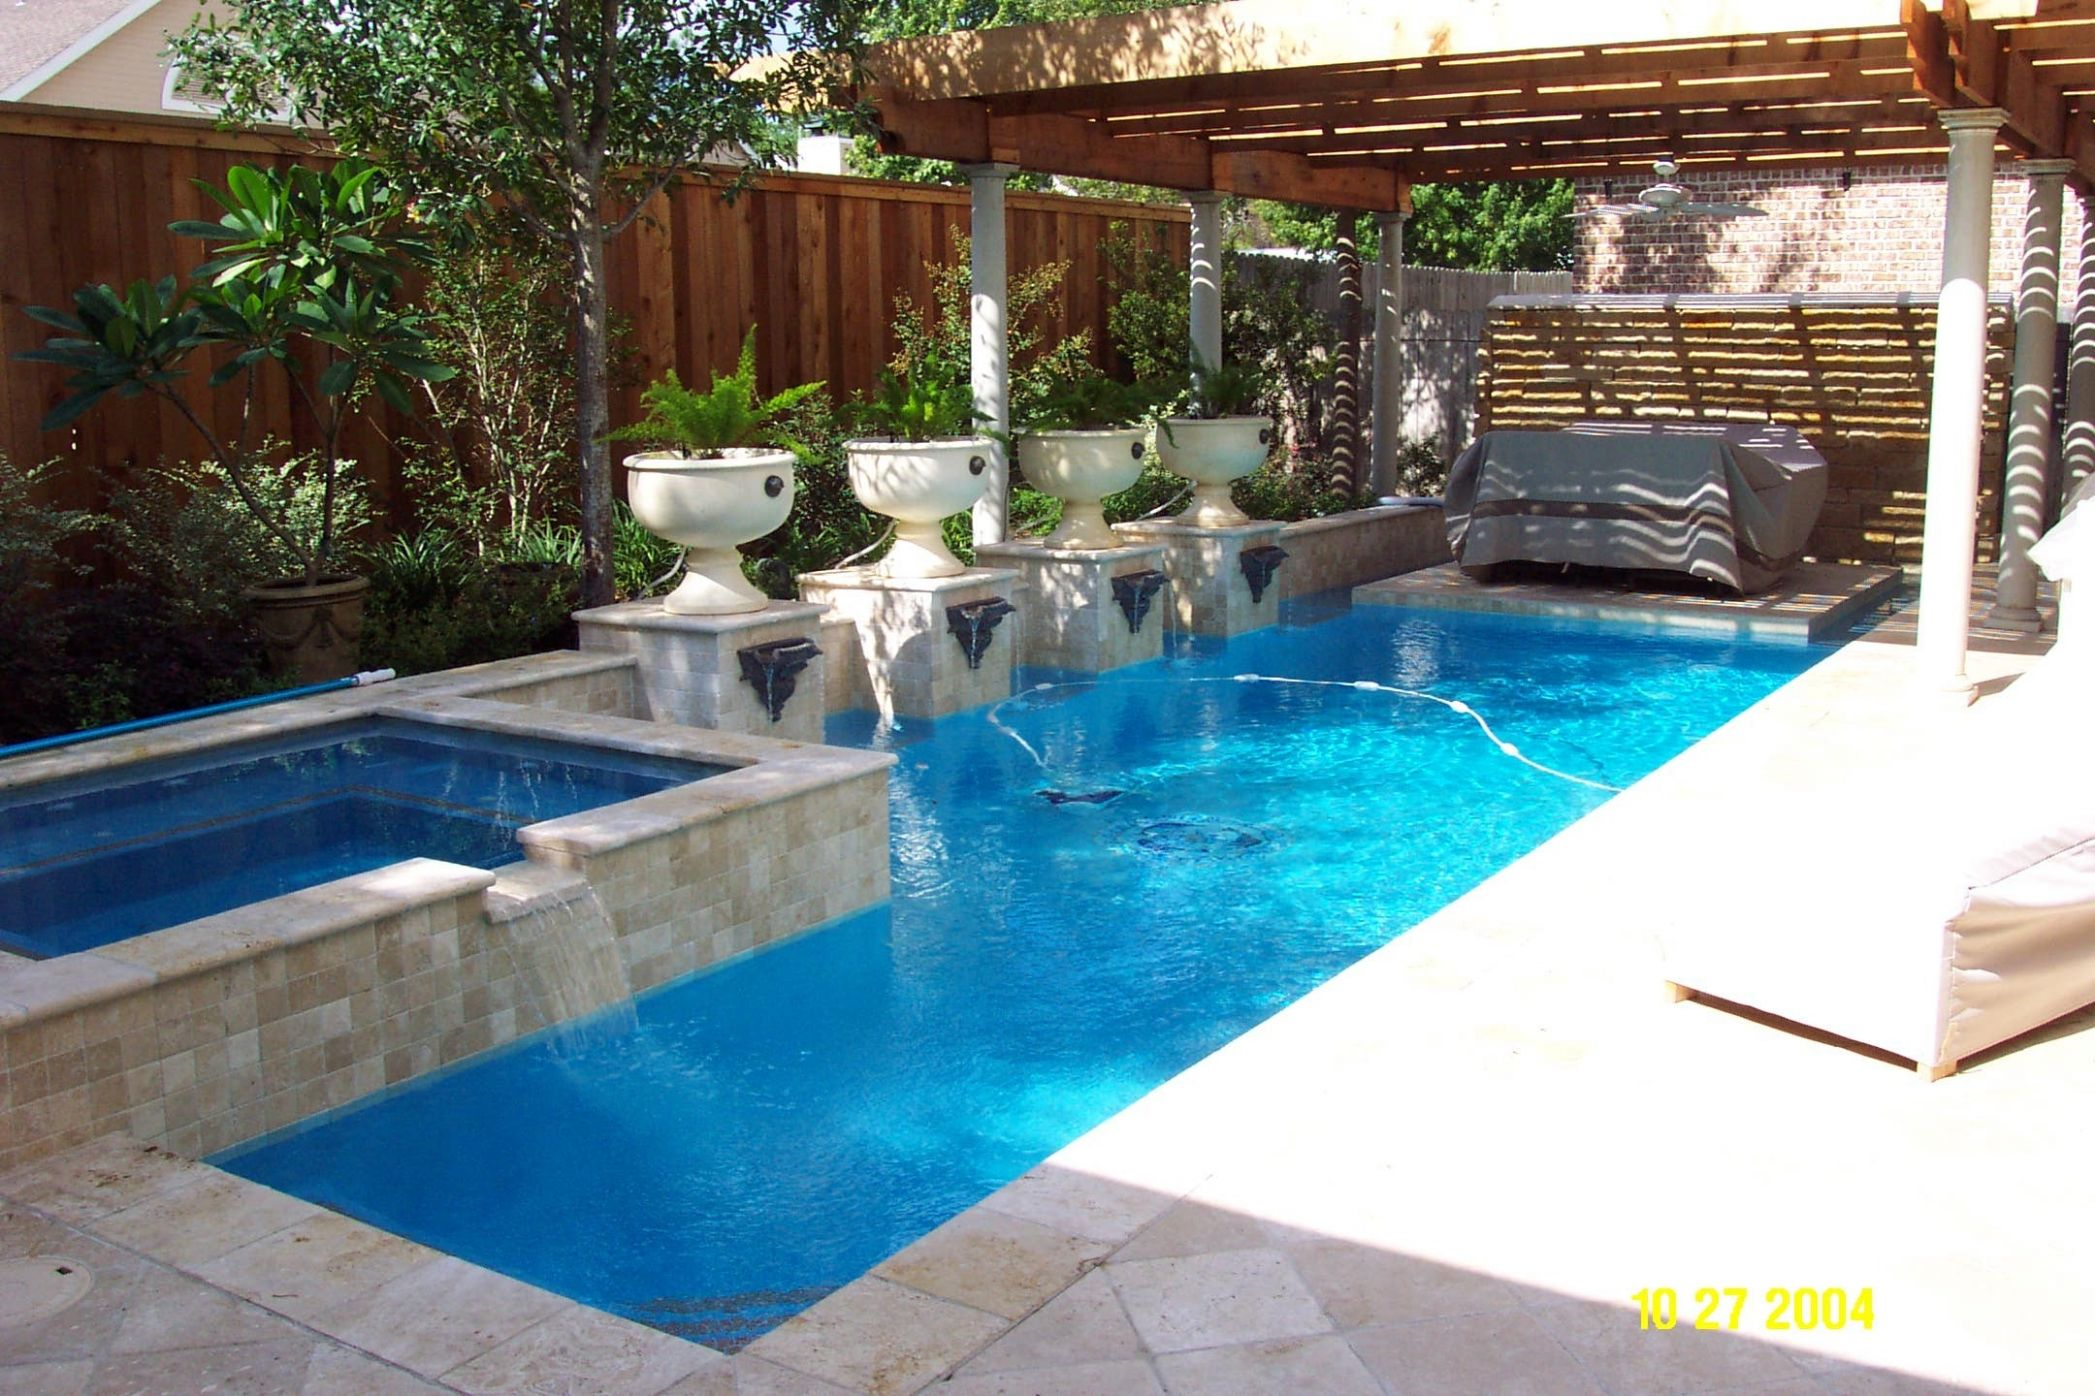 L Shaped Swimming Pool Designs For Small Backyard Landscaping ..